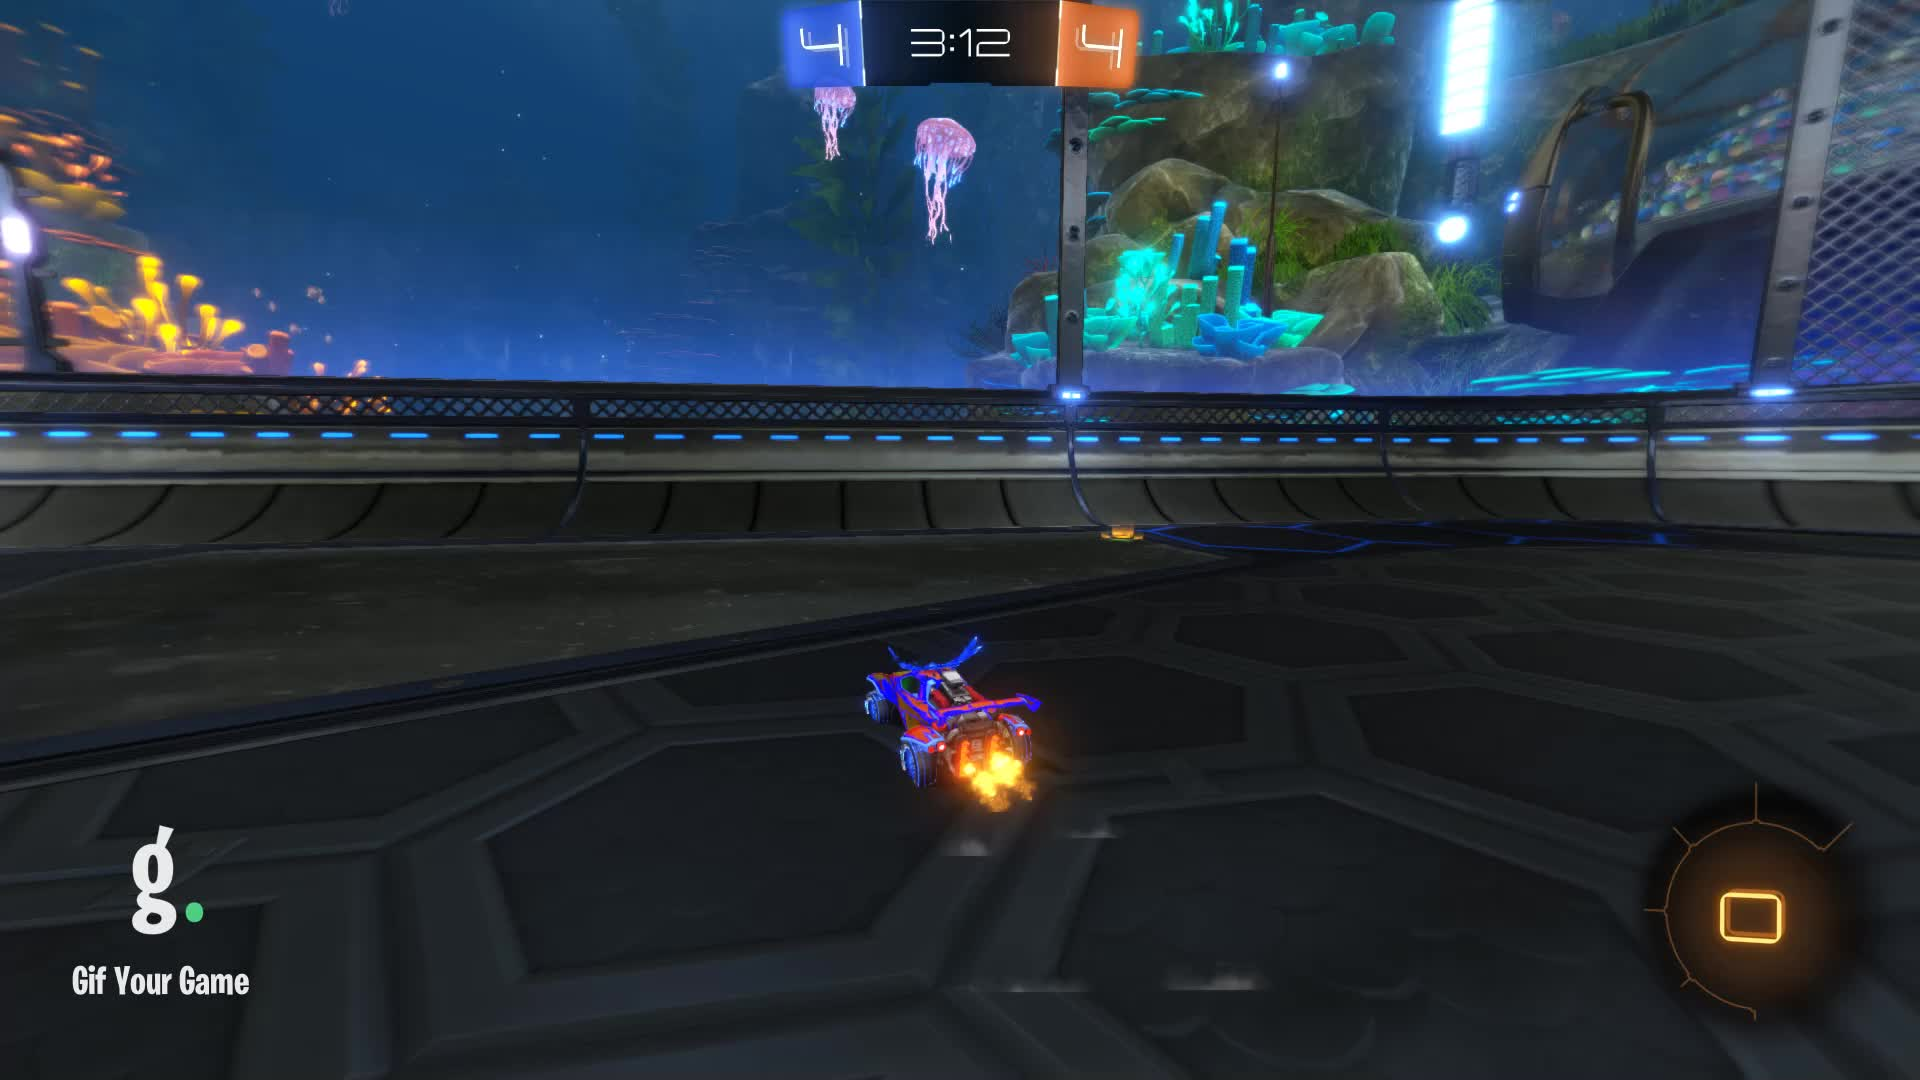 Gif Your Game, GifYourGame, Goal, Rocket League, RocketLeague, Timper [NL], Goal 9: Timper [NL] GIFs